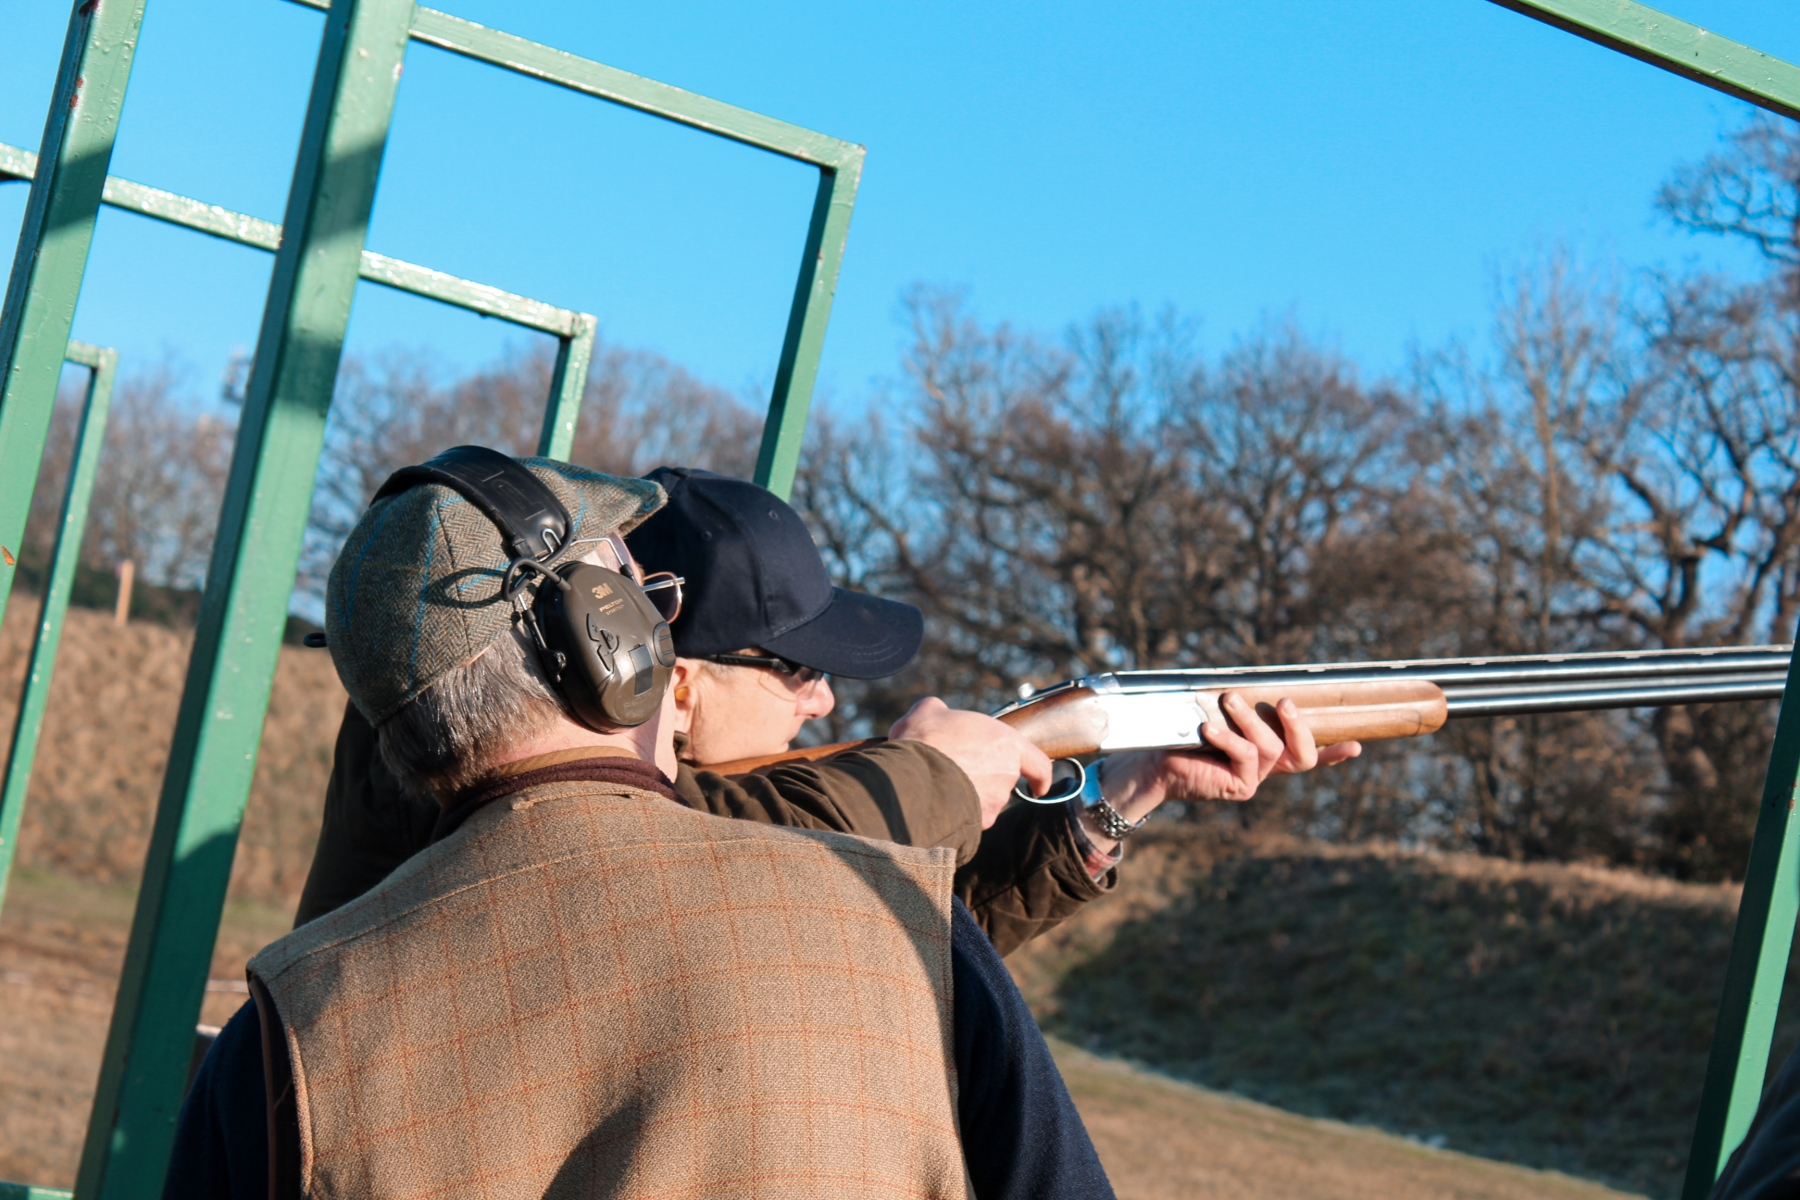 Clay Pigeon Shoot 15.02.2019 (78 of 79)